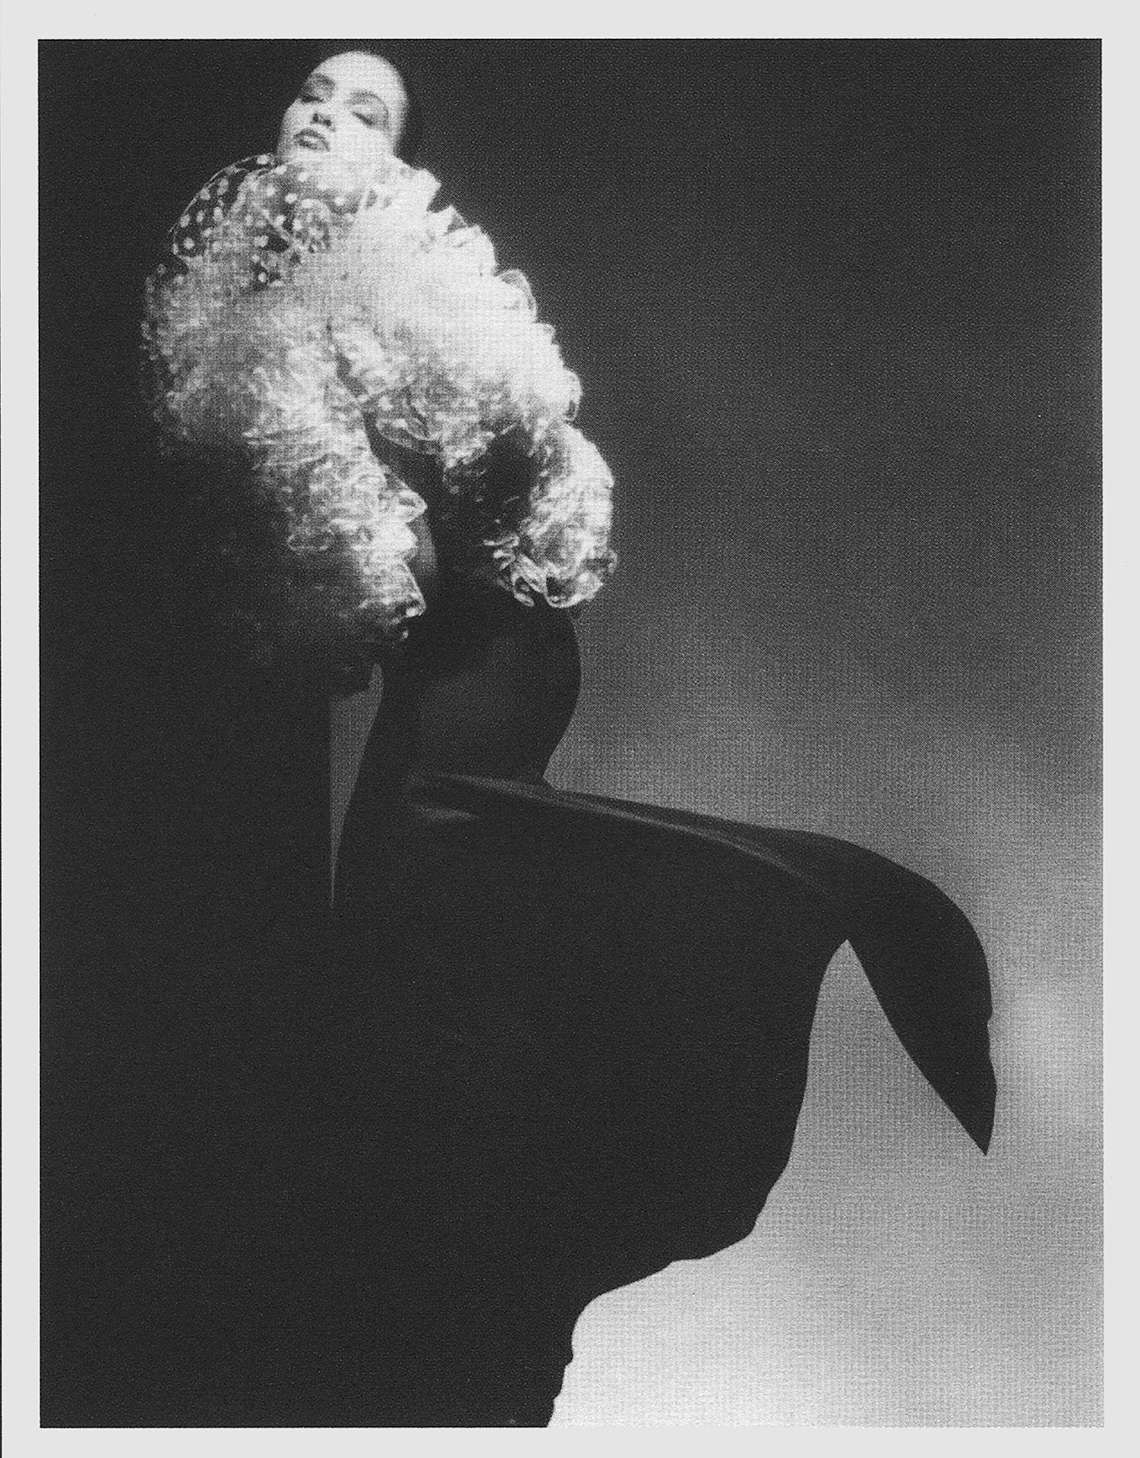 James Galanos. Evening gown and wrap. Silk satin and tulle. 1987. Publicity photograph. Victor Skrebneski. Model, Tatiana. Drexel University Archives